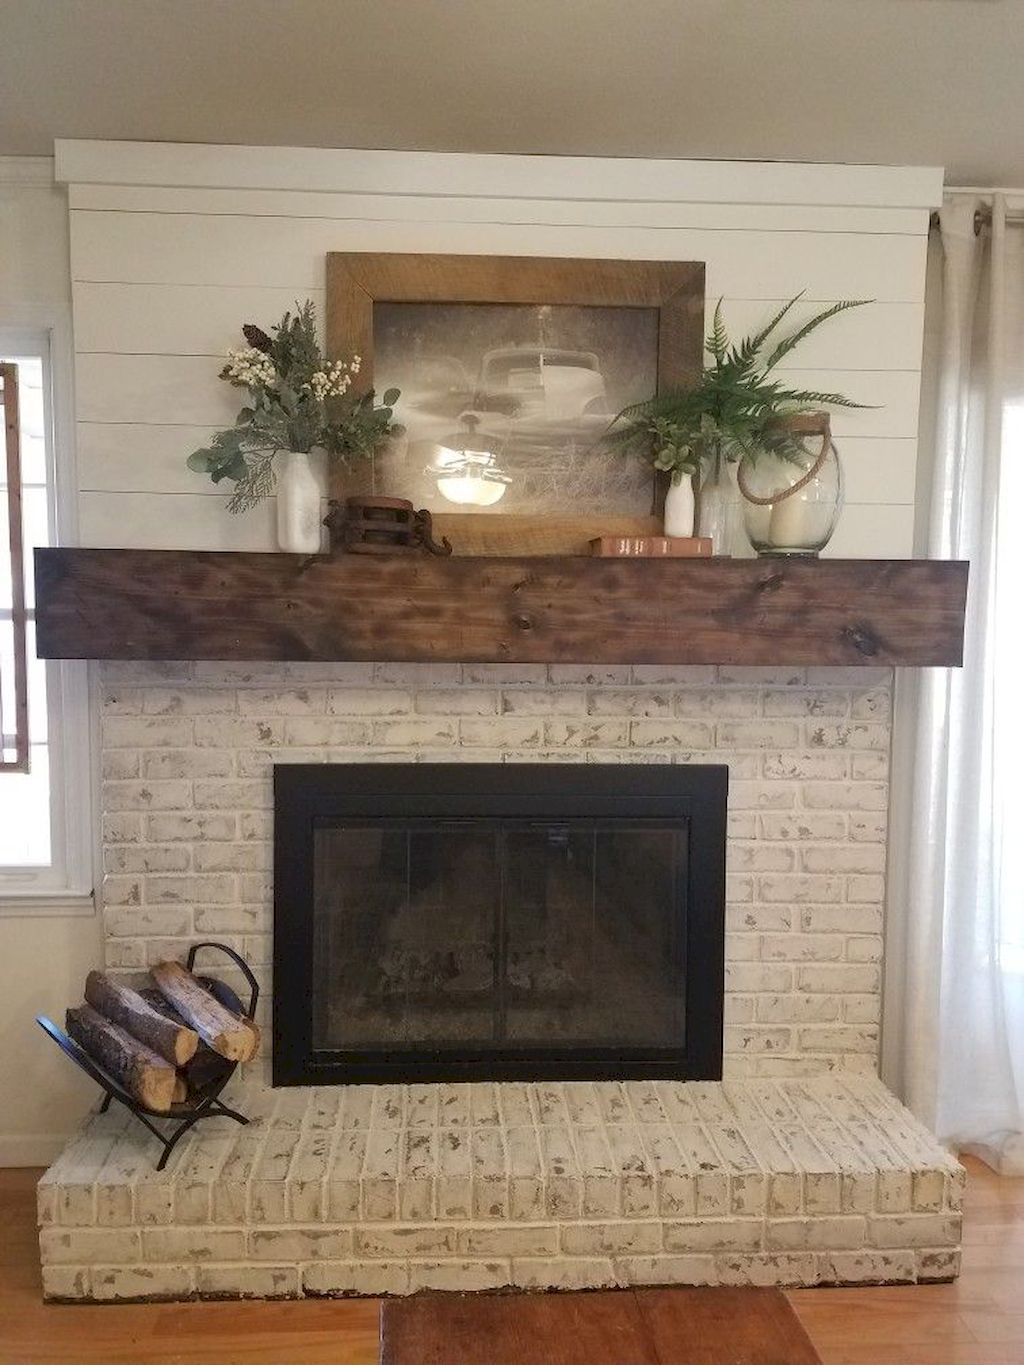 30 Distressed Rustic Living Room Design Ideas To Inspire: There Are So Many Seasonal And Festive Fireplace Mantel